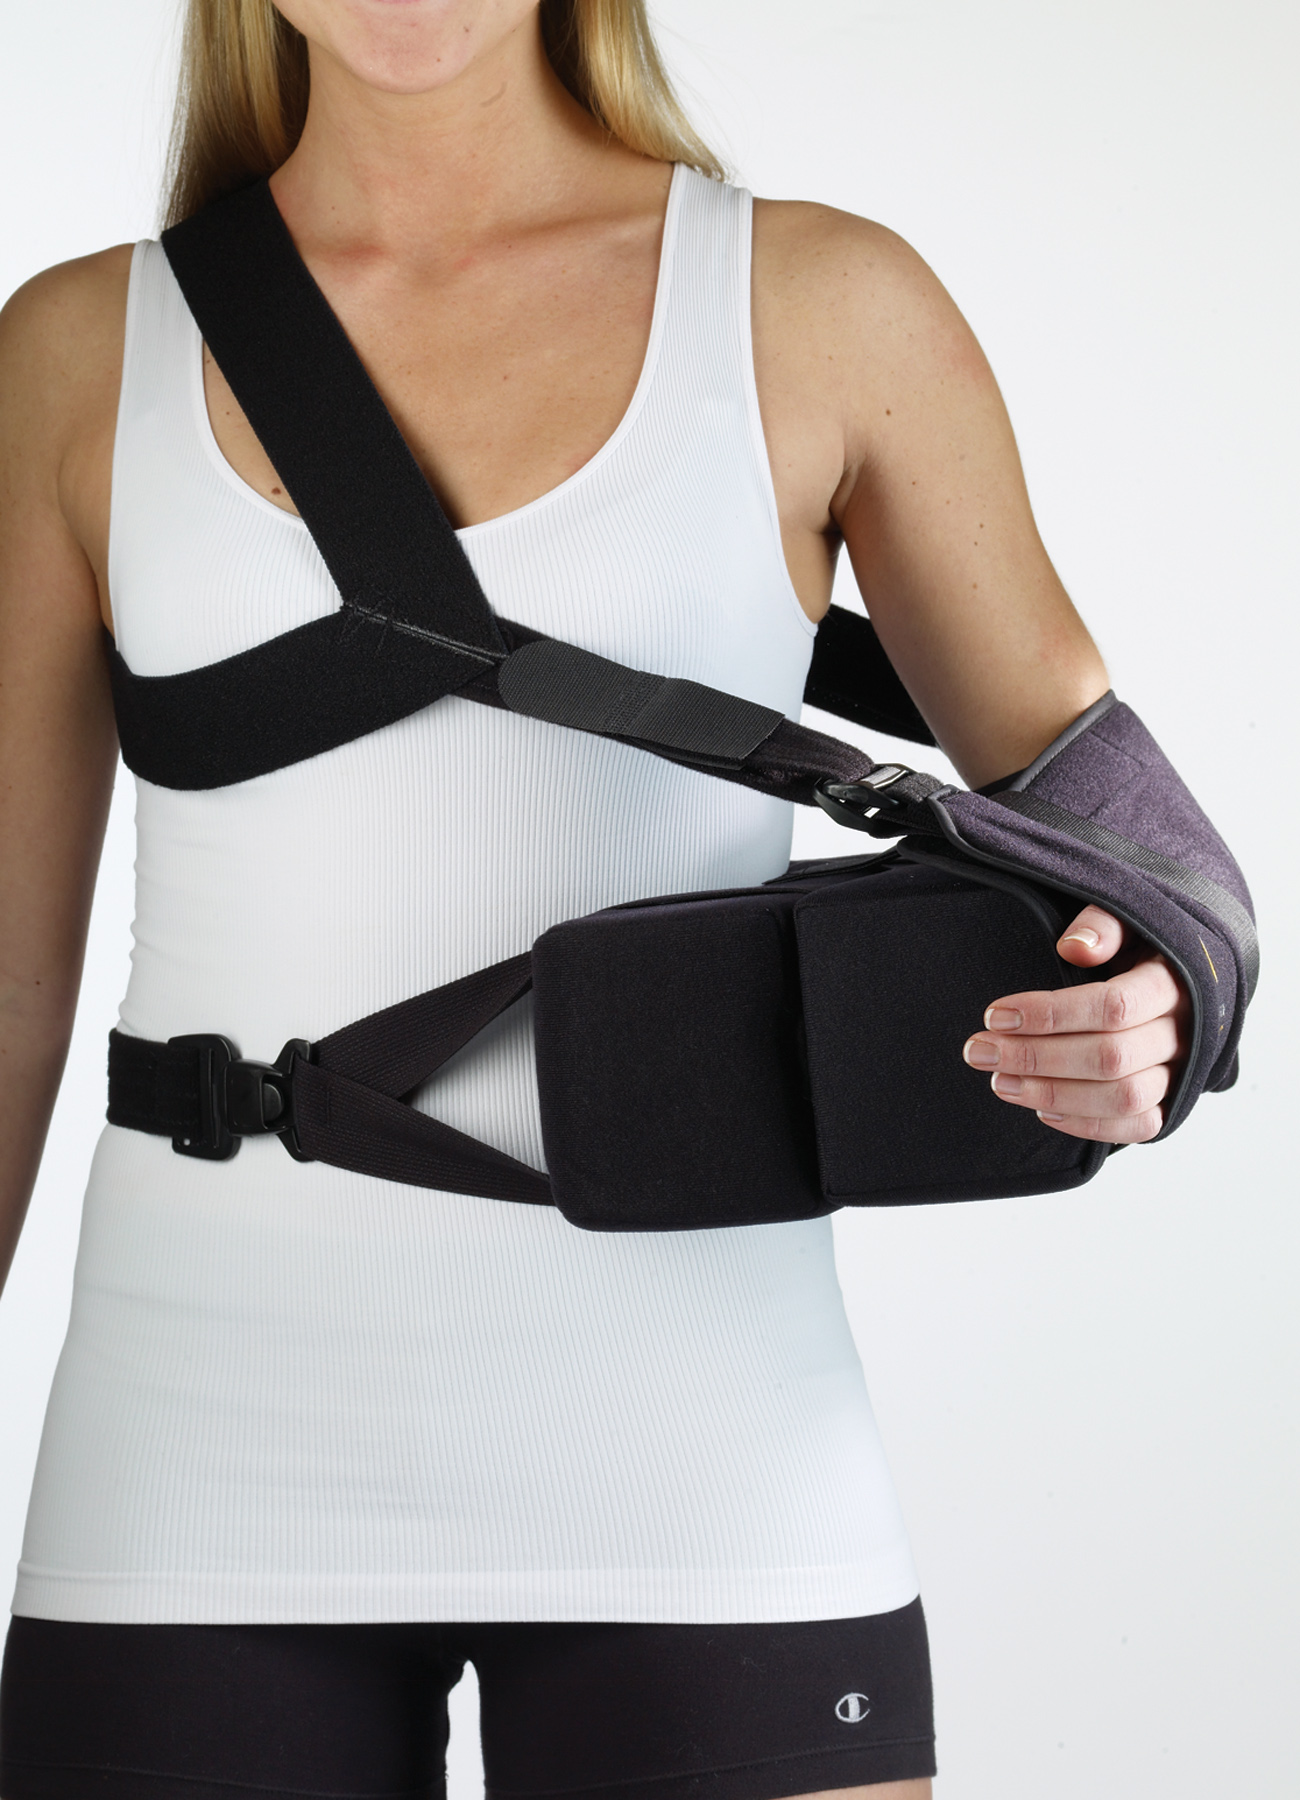 Ultra ER Shoulder Abduction Pillow w/Sling